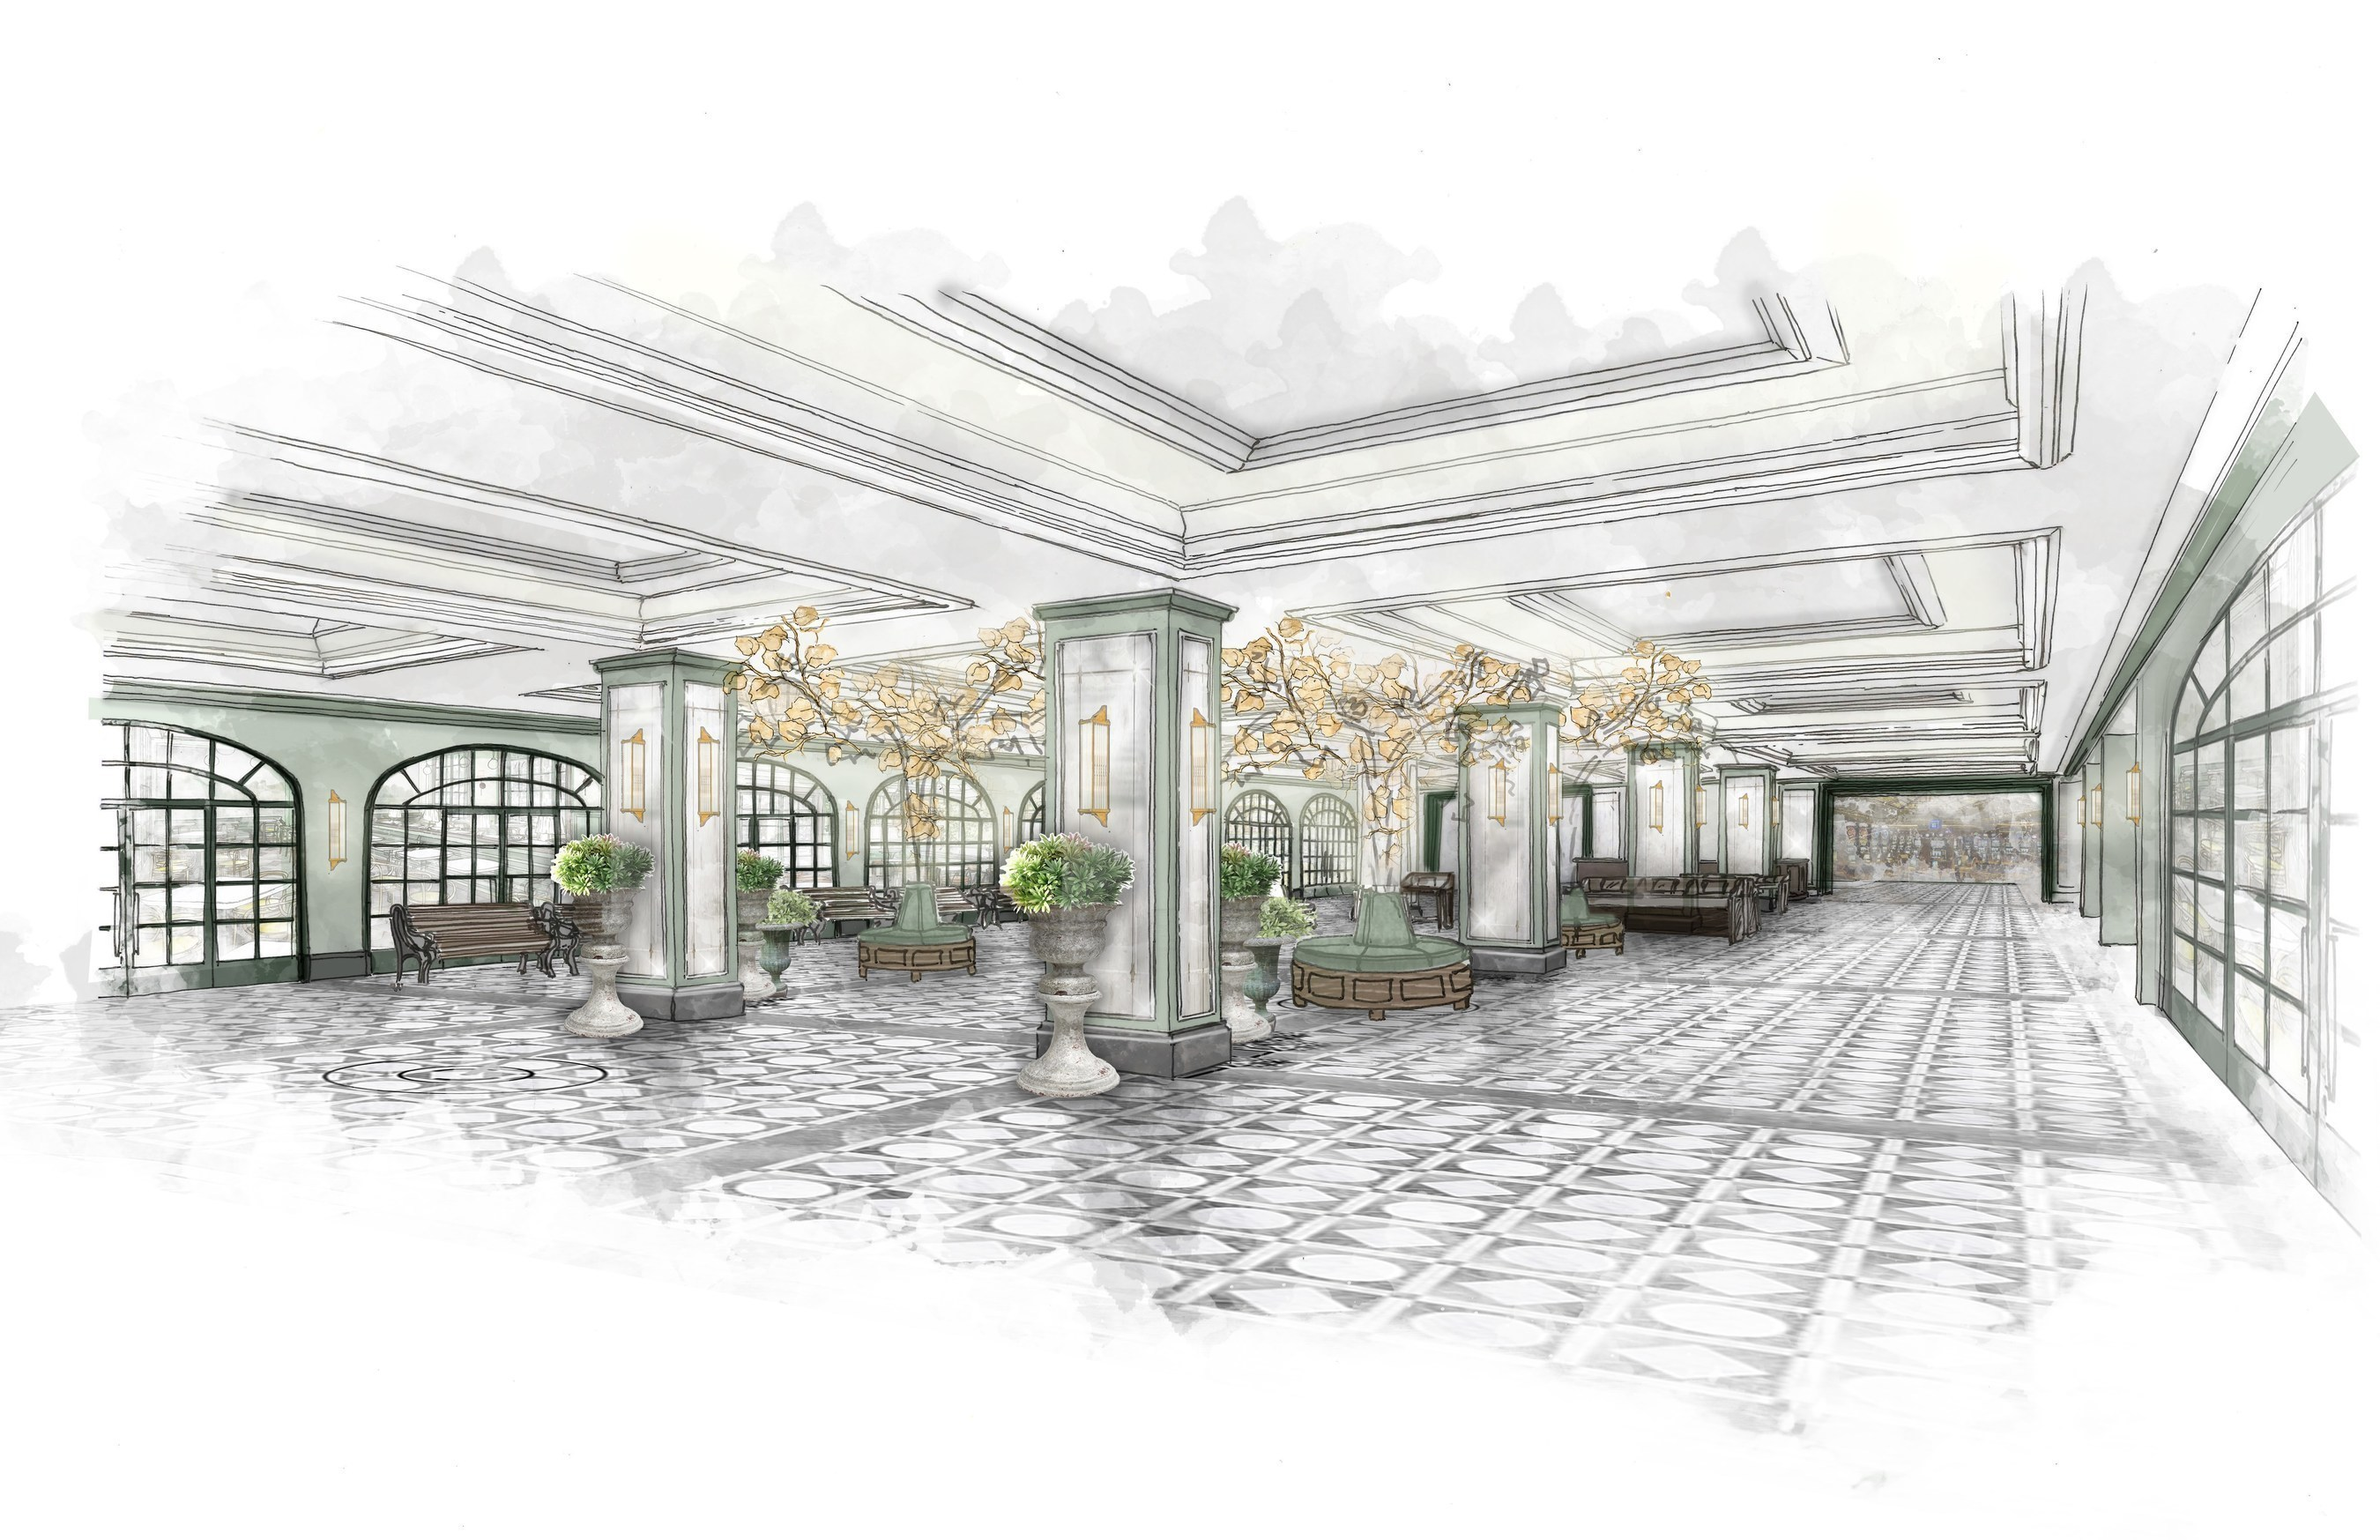 Lobby: MGM Resorts International and Sydell Group announced a partnership to reimagine Monte Carlo Resort on the famed Las Vegas Strip with two distinct hotel experiences - Park MGM and The NoMad Las Vegas. Design inspiration for Park MGM lobby pictured here.